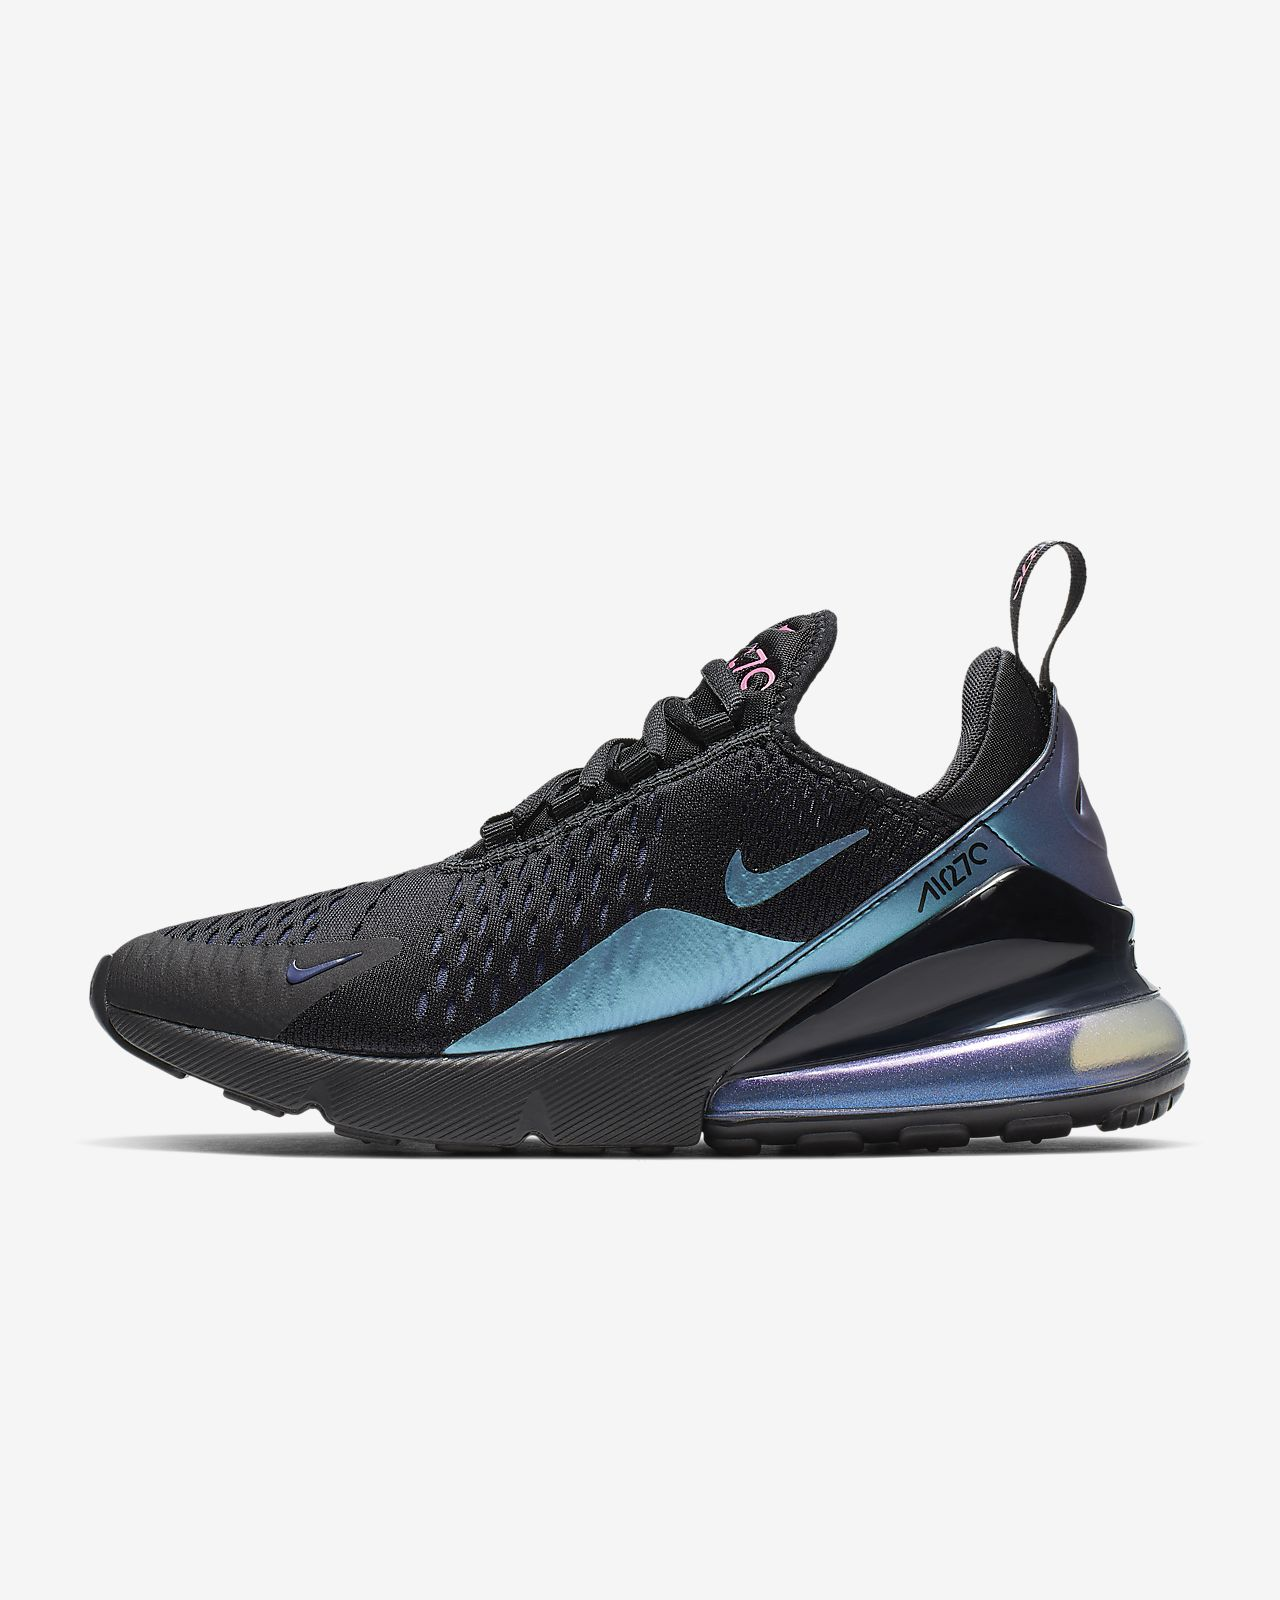 6324be703cf0bb Nike Air Max 270 Damenschuh. Nike.com DE